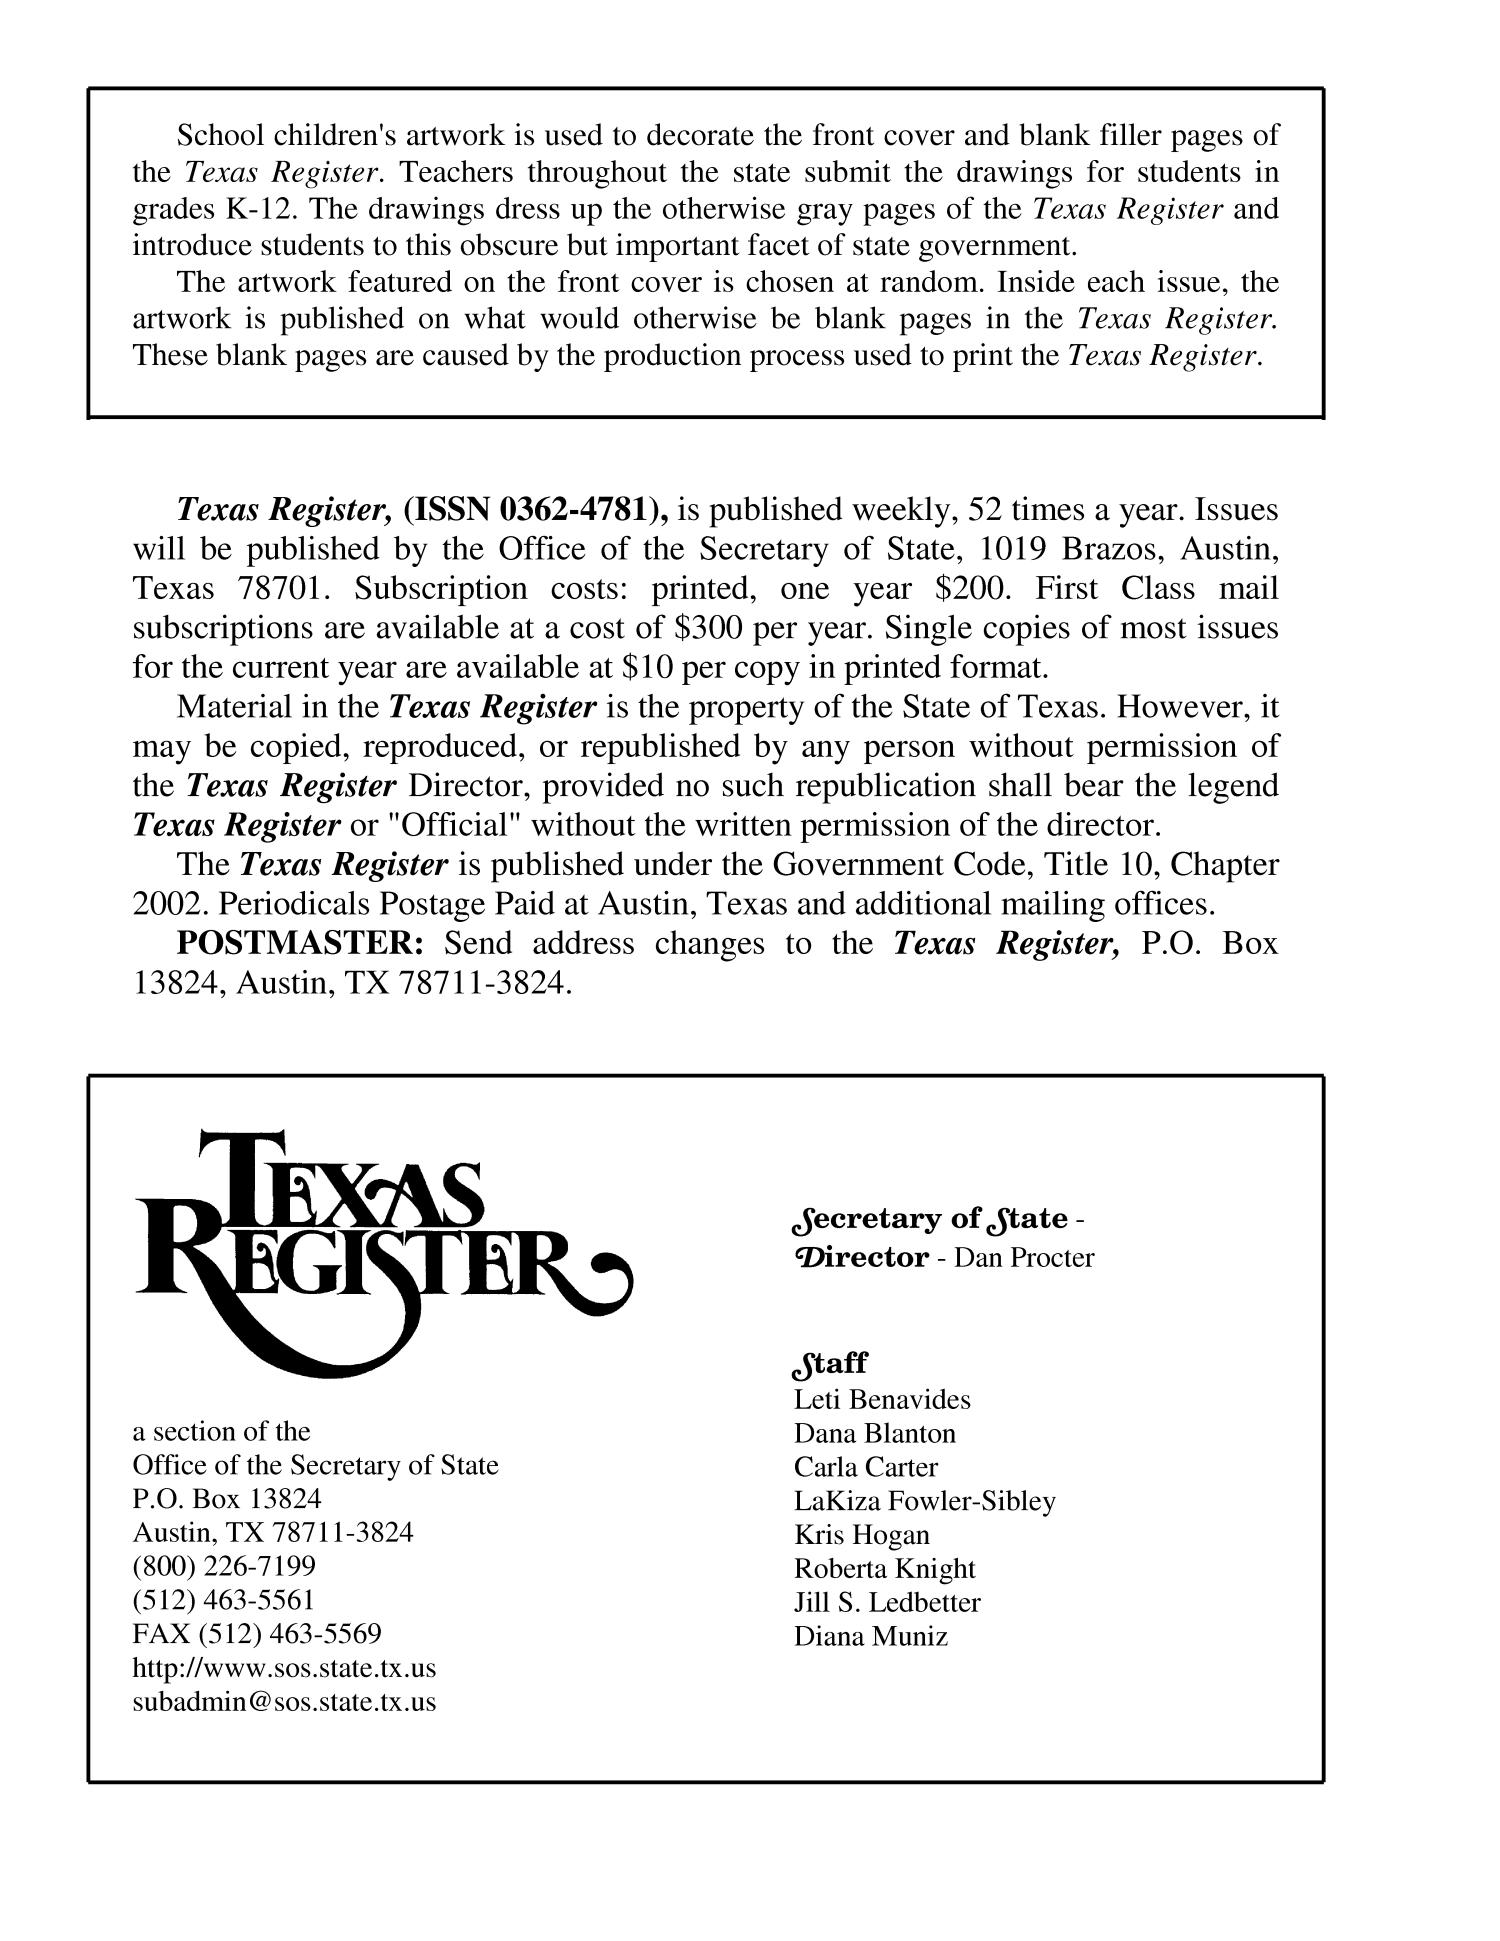 Texas Register, Volume 28, Number 33, Pages 6397-6614, August 15, 2003                                                                                                      6398